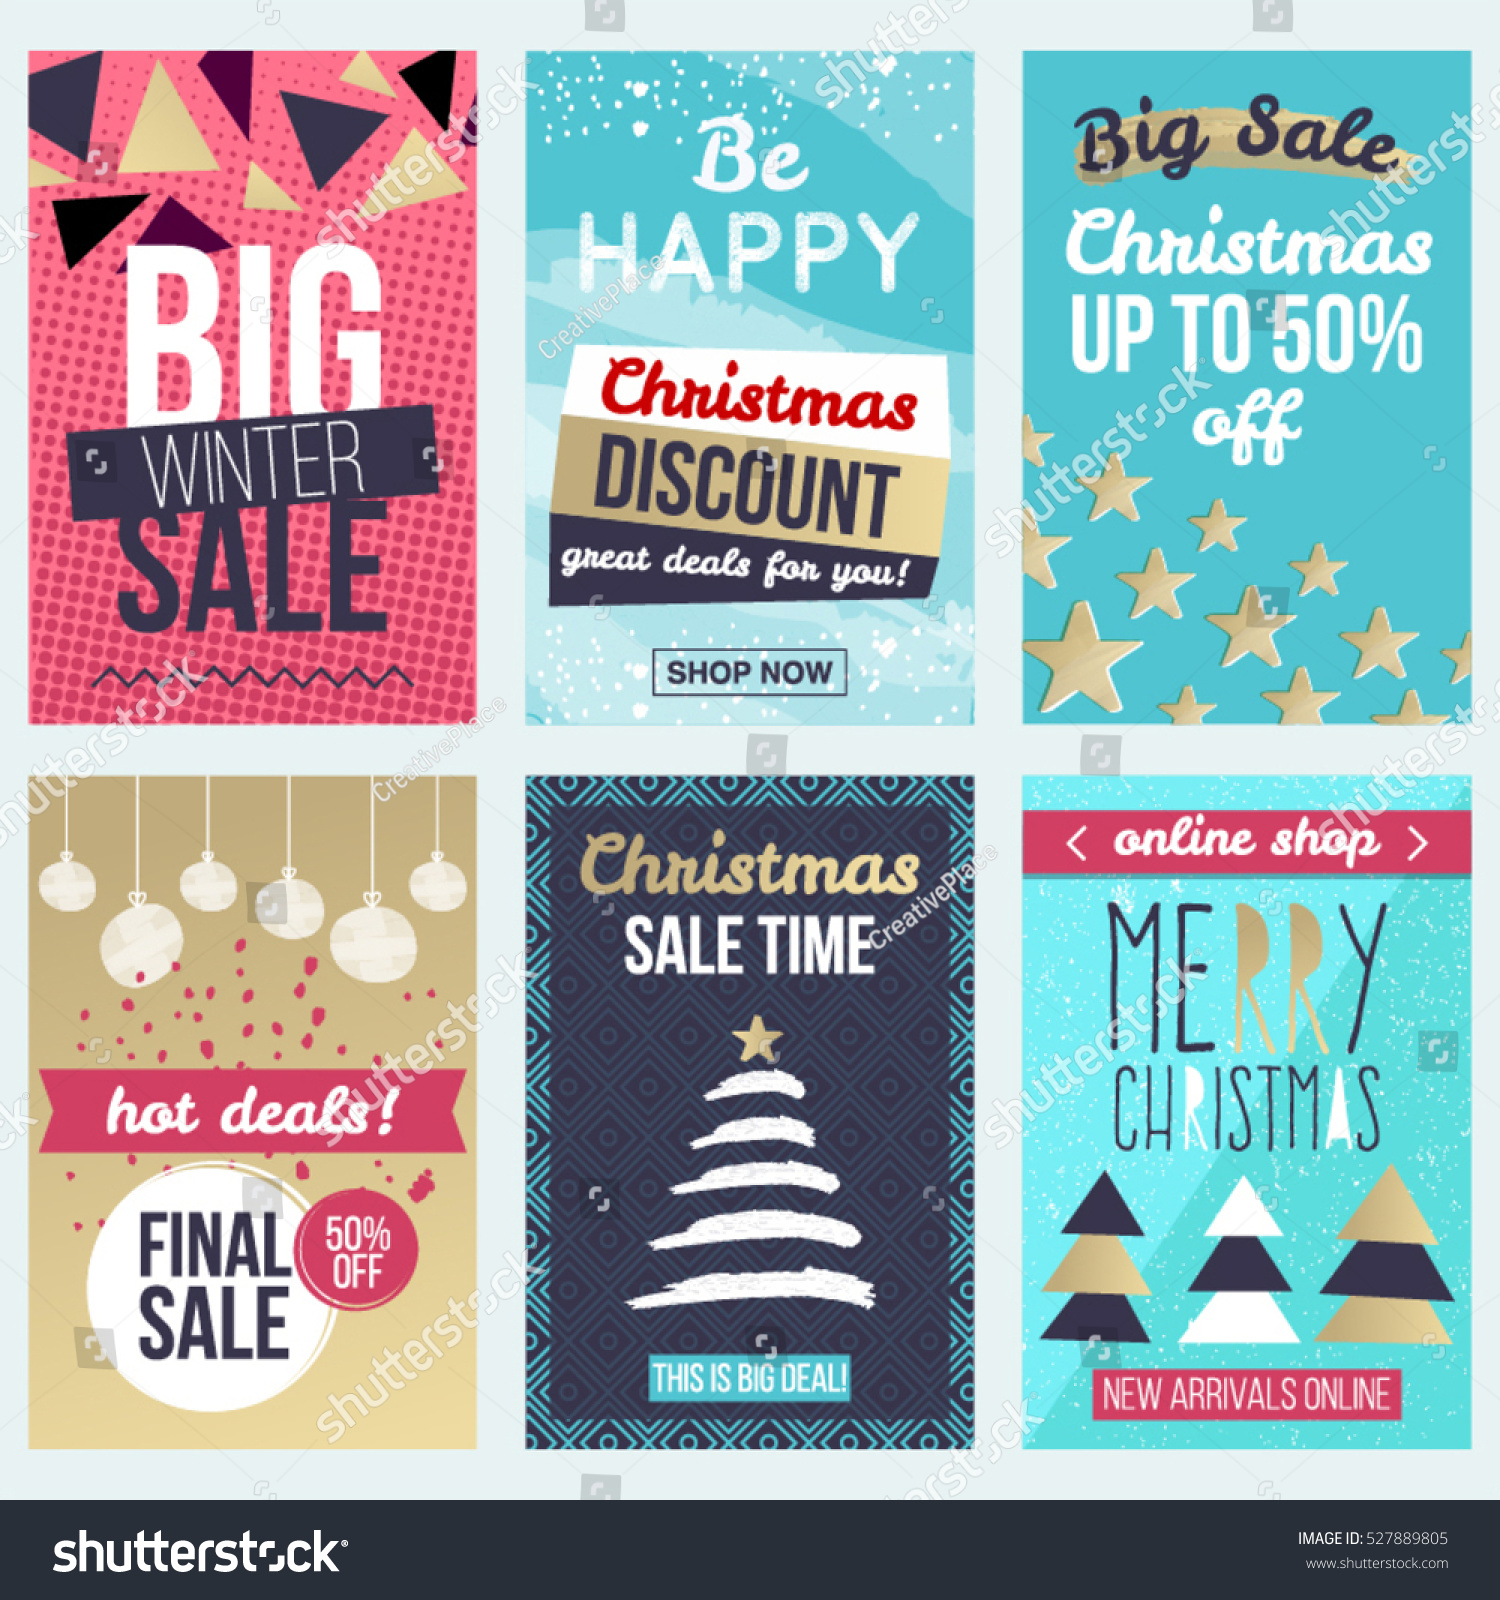 Discount Greeting Cards Images Greetings Card Design Simple